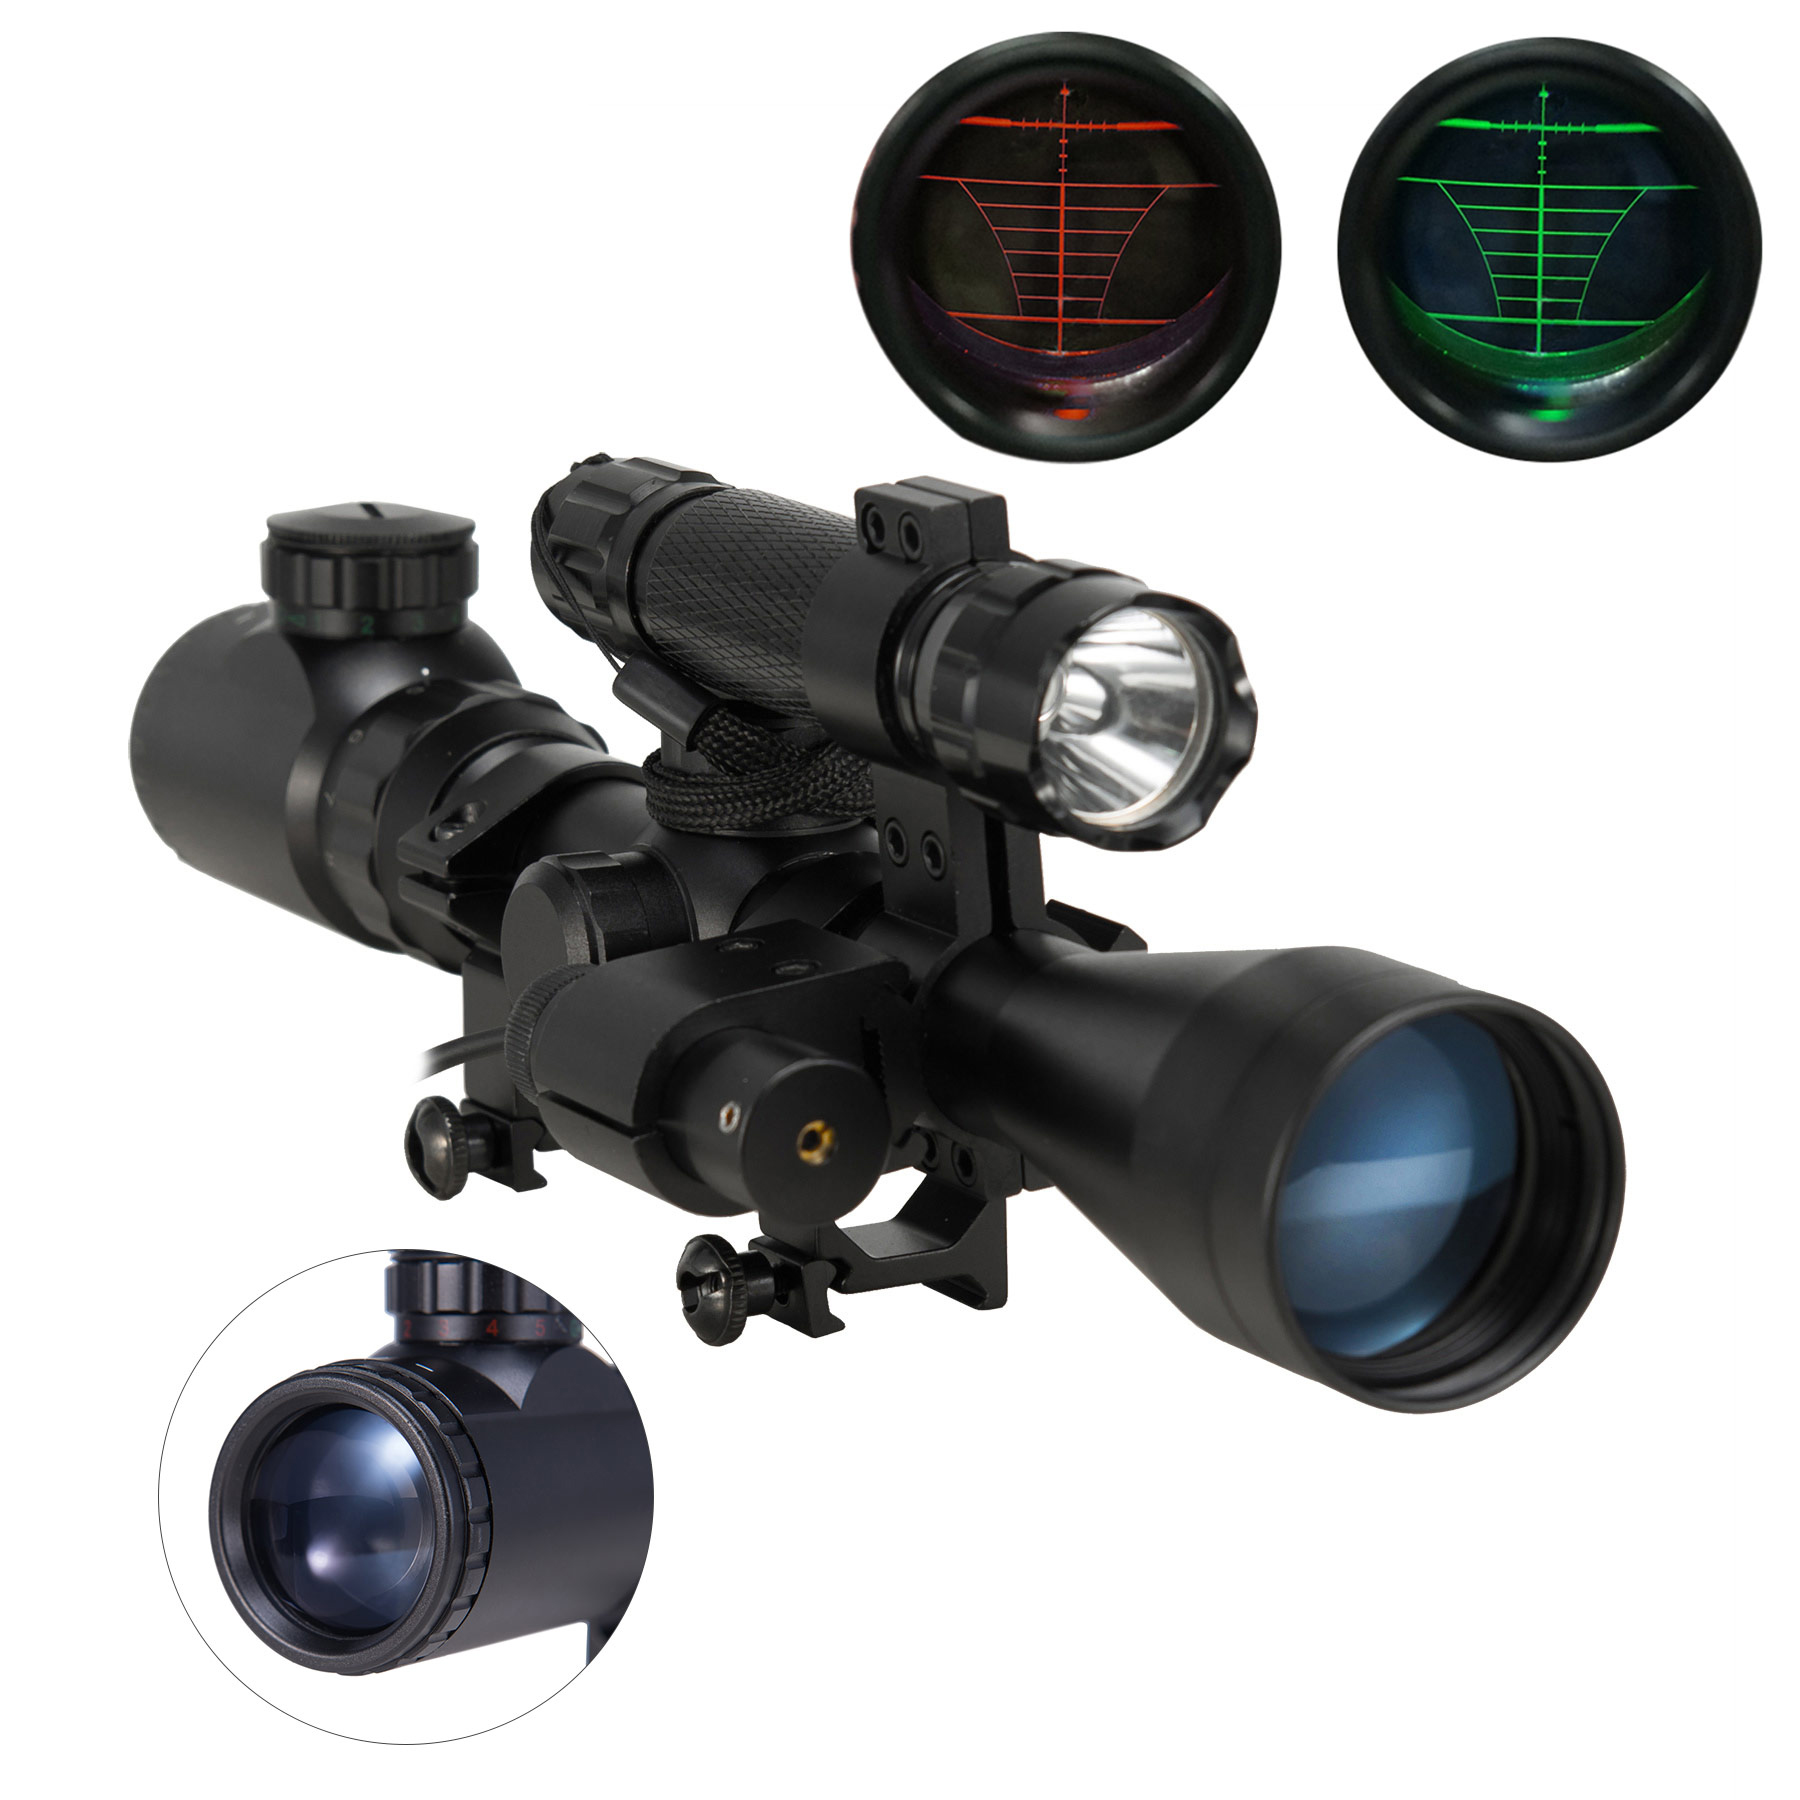 Pinty 3 in 1 Tactical 3-9X40 Red Green Mil-Dot Illumination Reticle Riflescope Scope Combo with Laser Sight and Torch... by Pinty